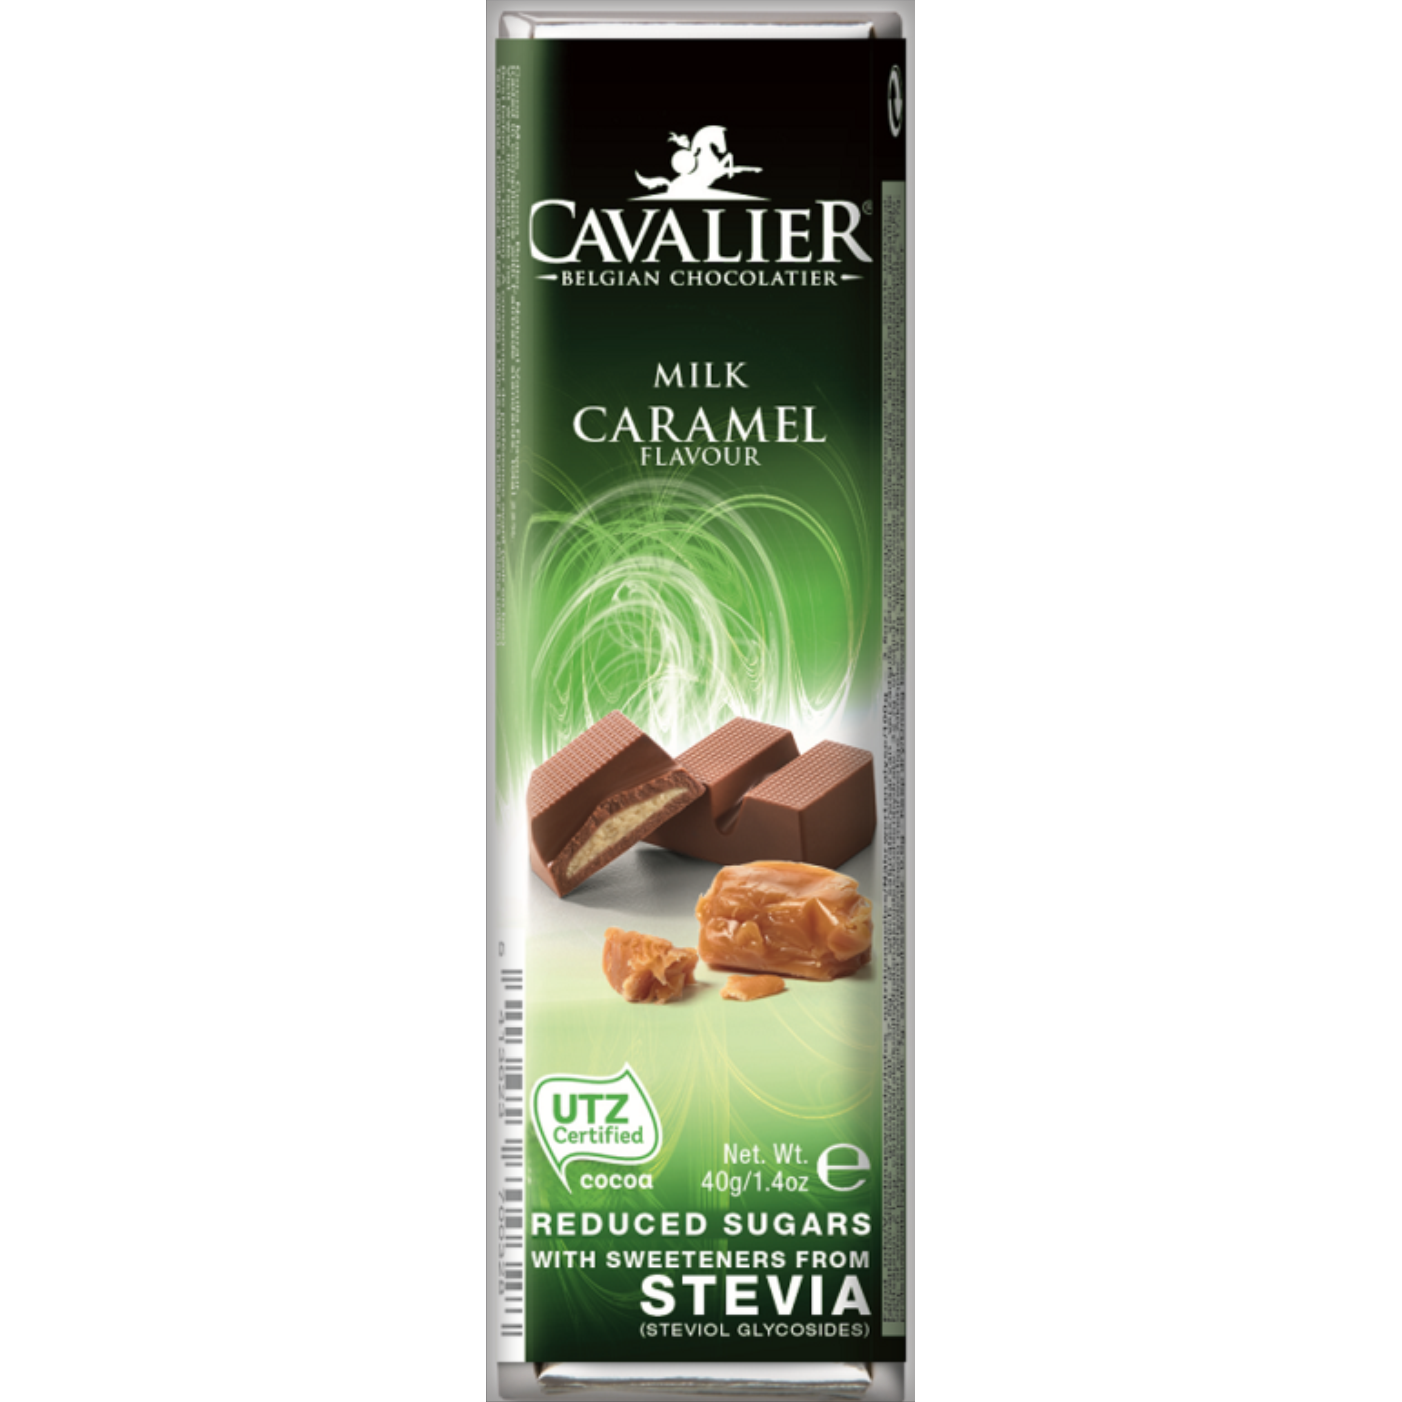 Cavalier Chocolate Reduced Sugar with Stevia Milk Chocolate Caramel 43g Bar